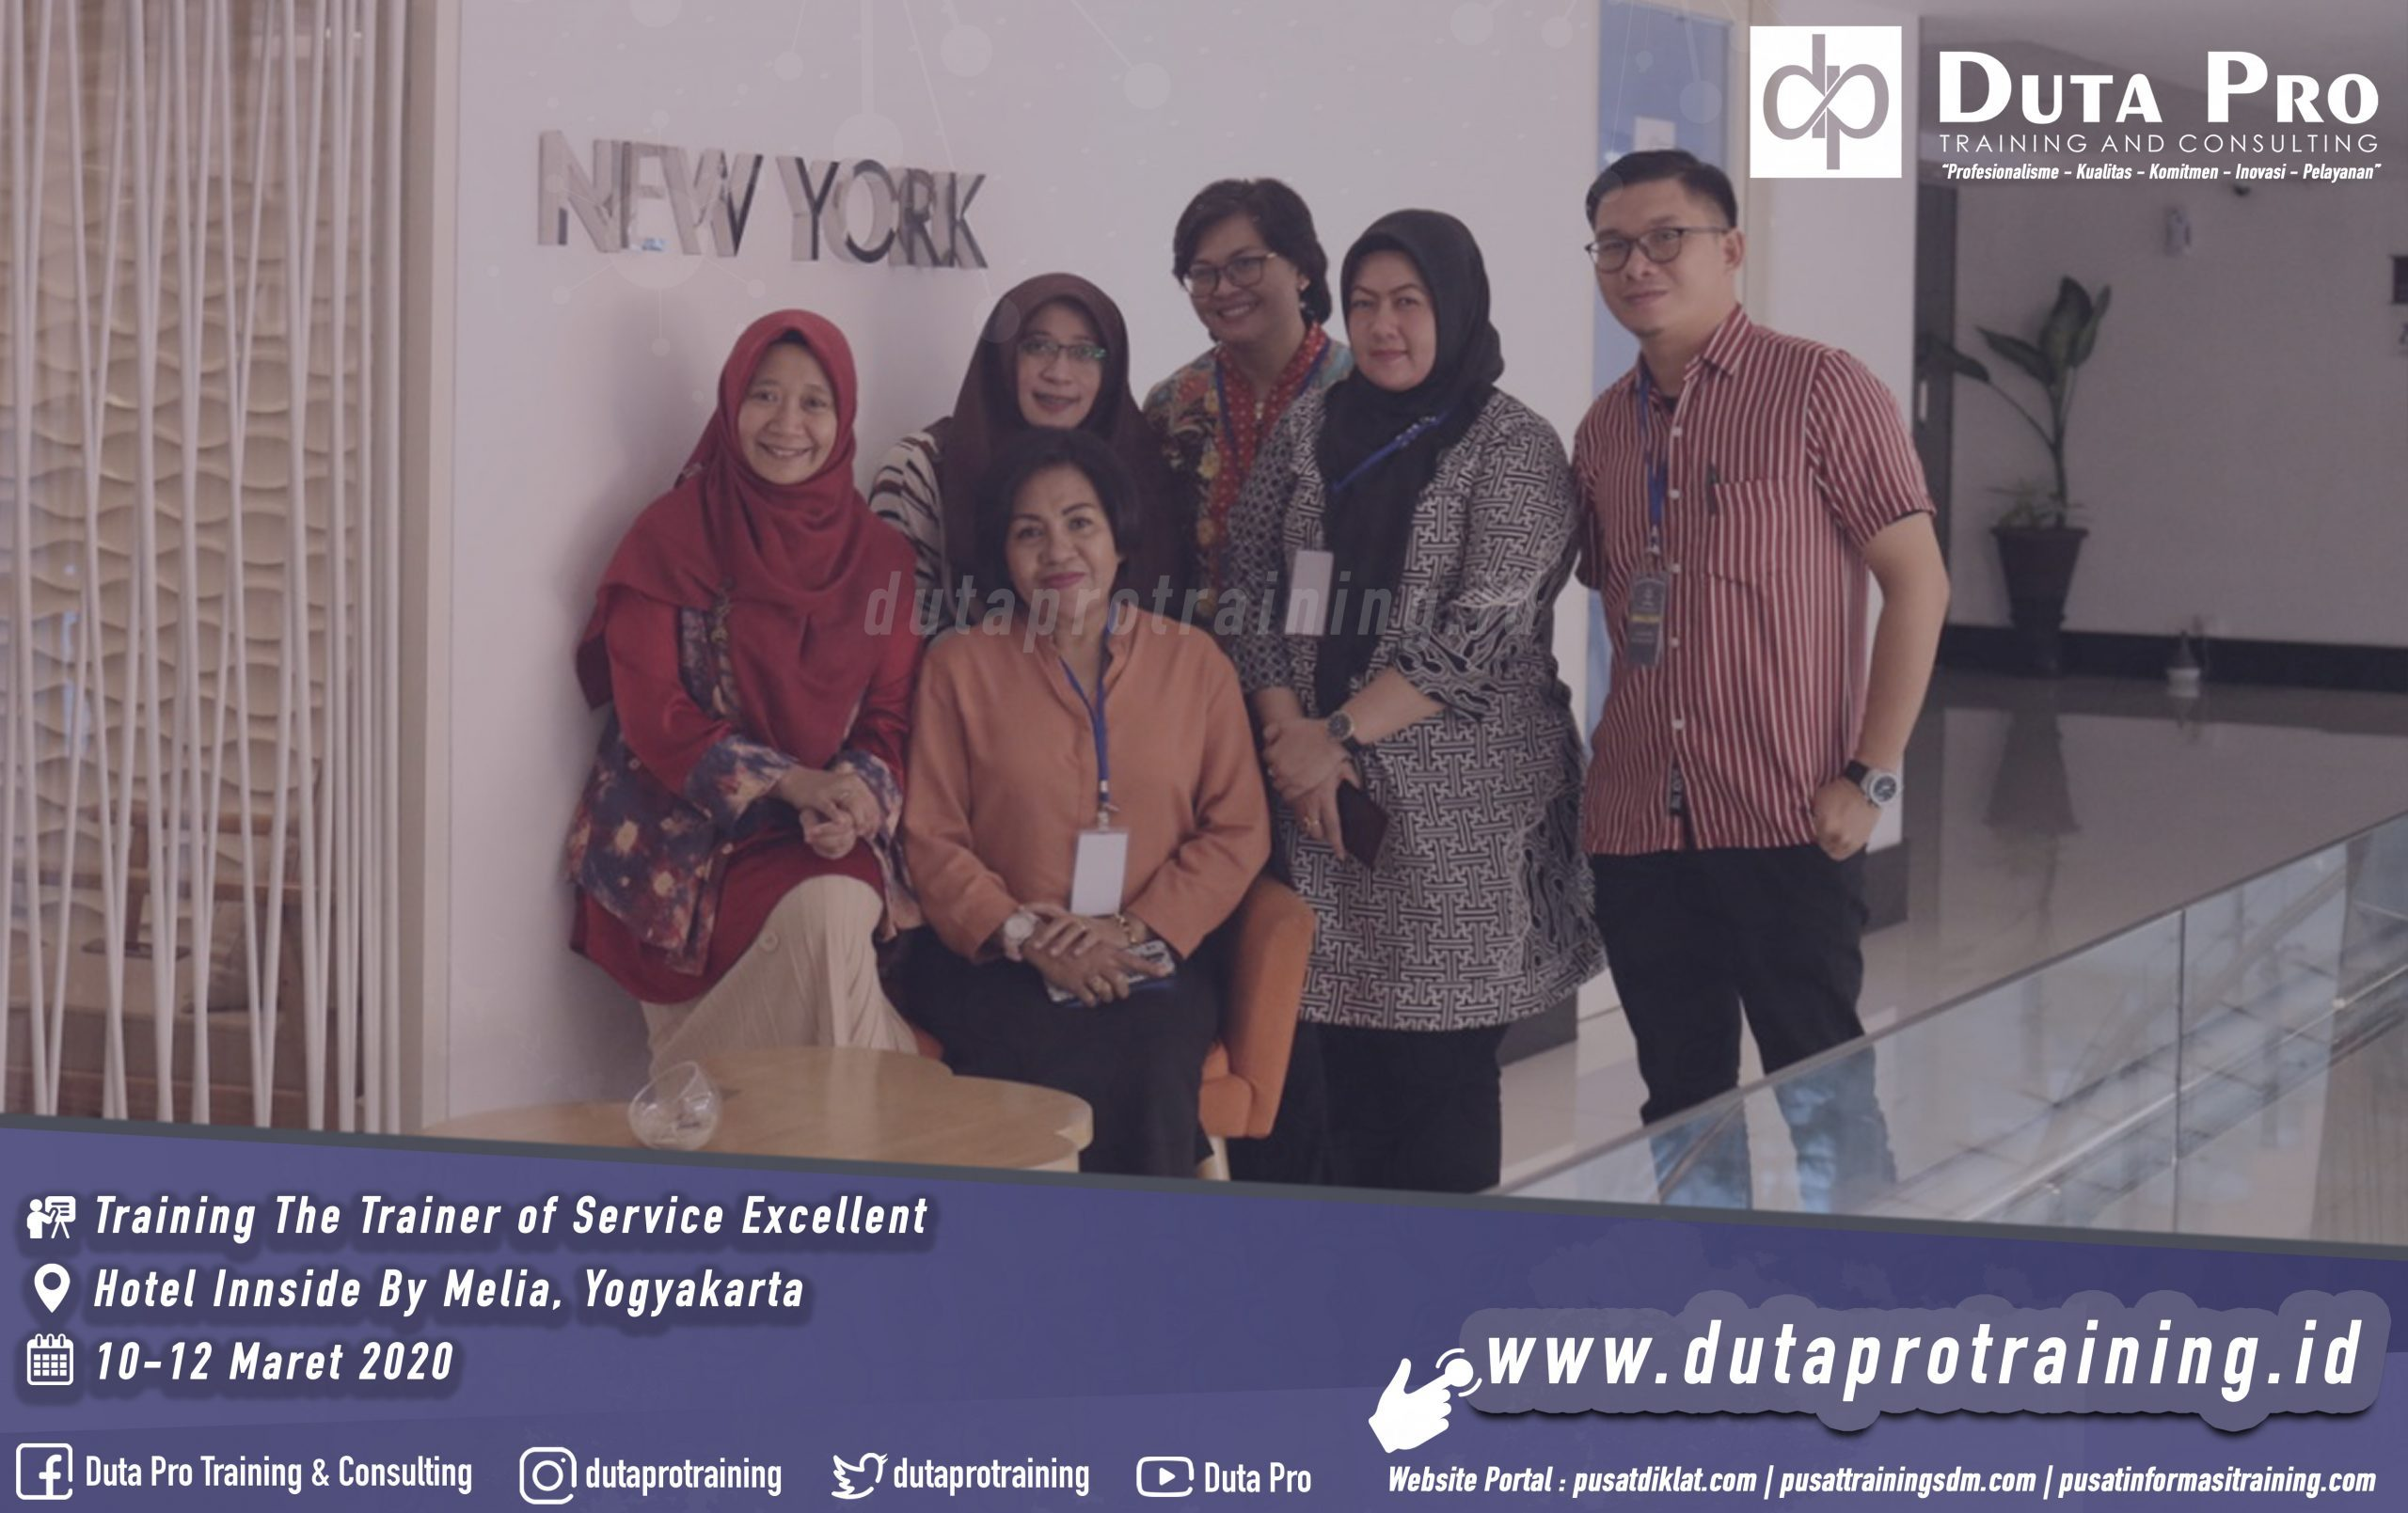 Training The Trainer of Service Excellent Hotel jogja duta pro. Galeri Website scaled 2559x1609 - Training Compressor Operation, Maintenance & Troubleshooting